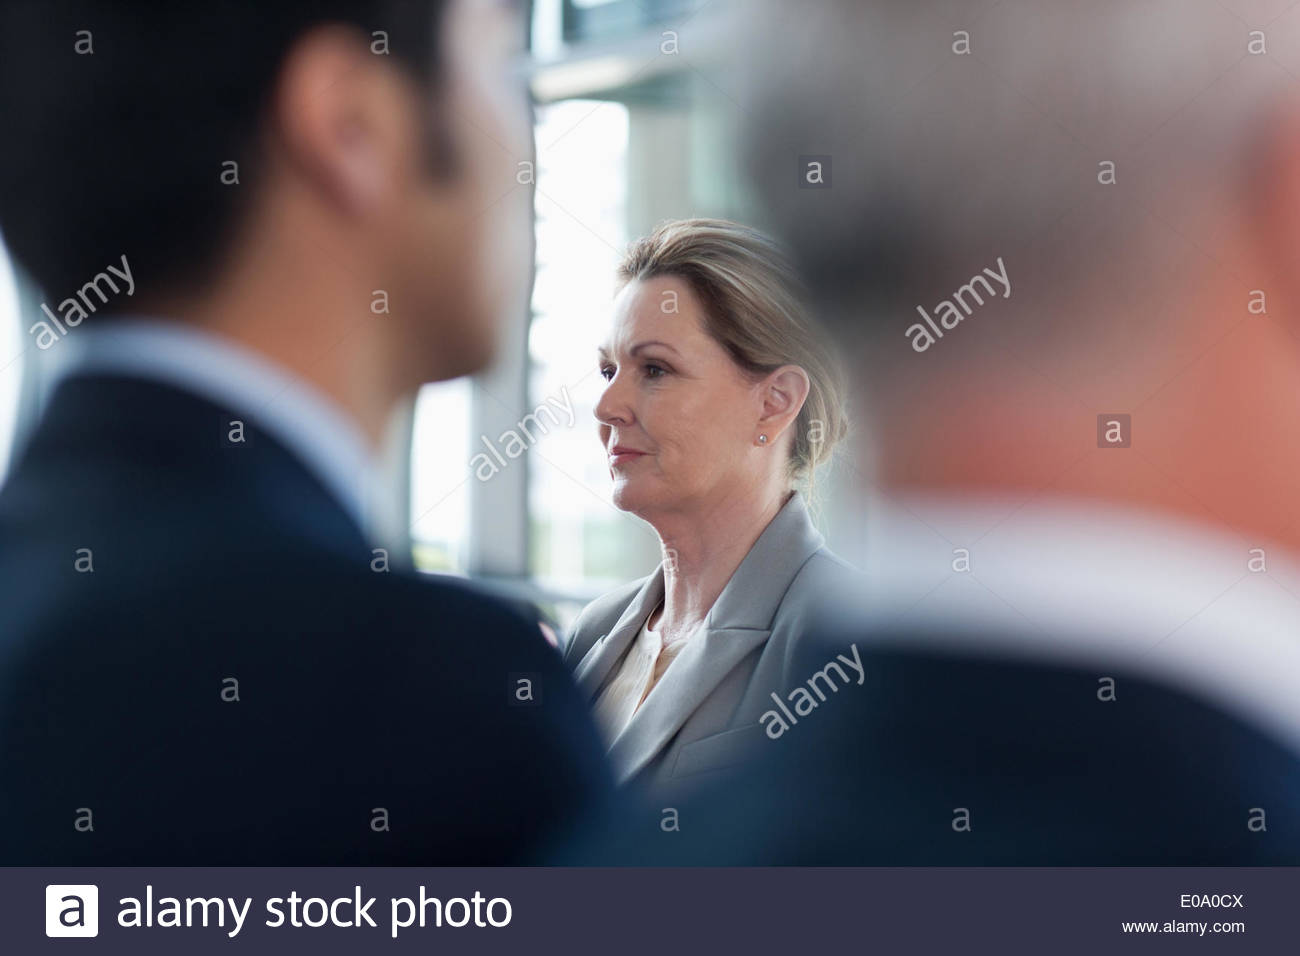 Business people talking face to face - Stock Image